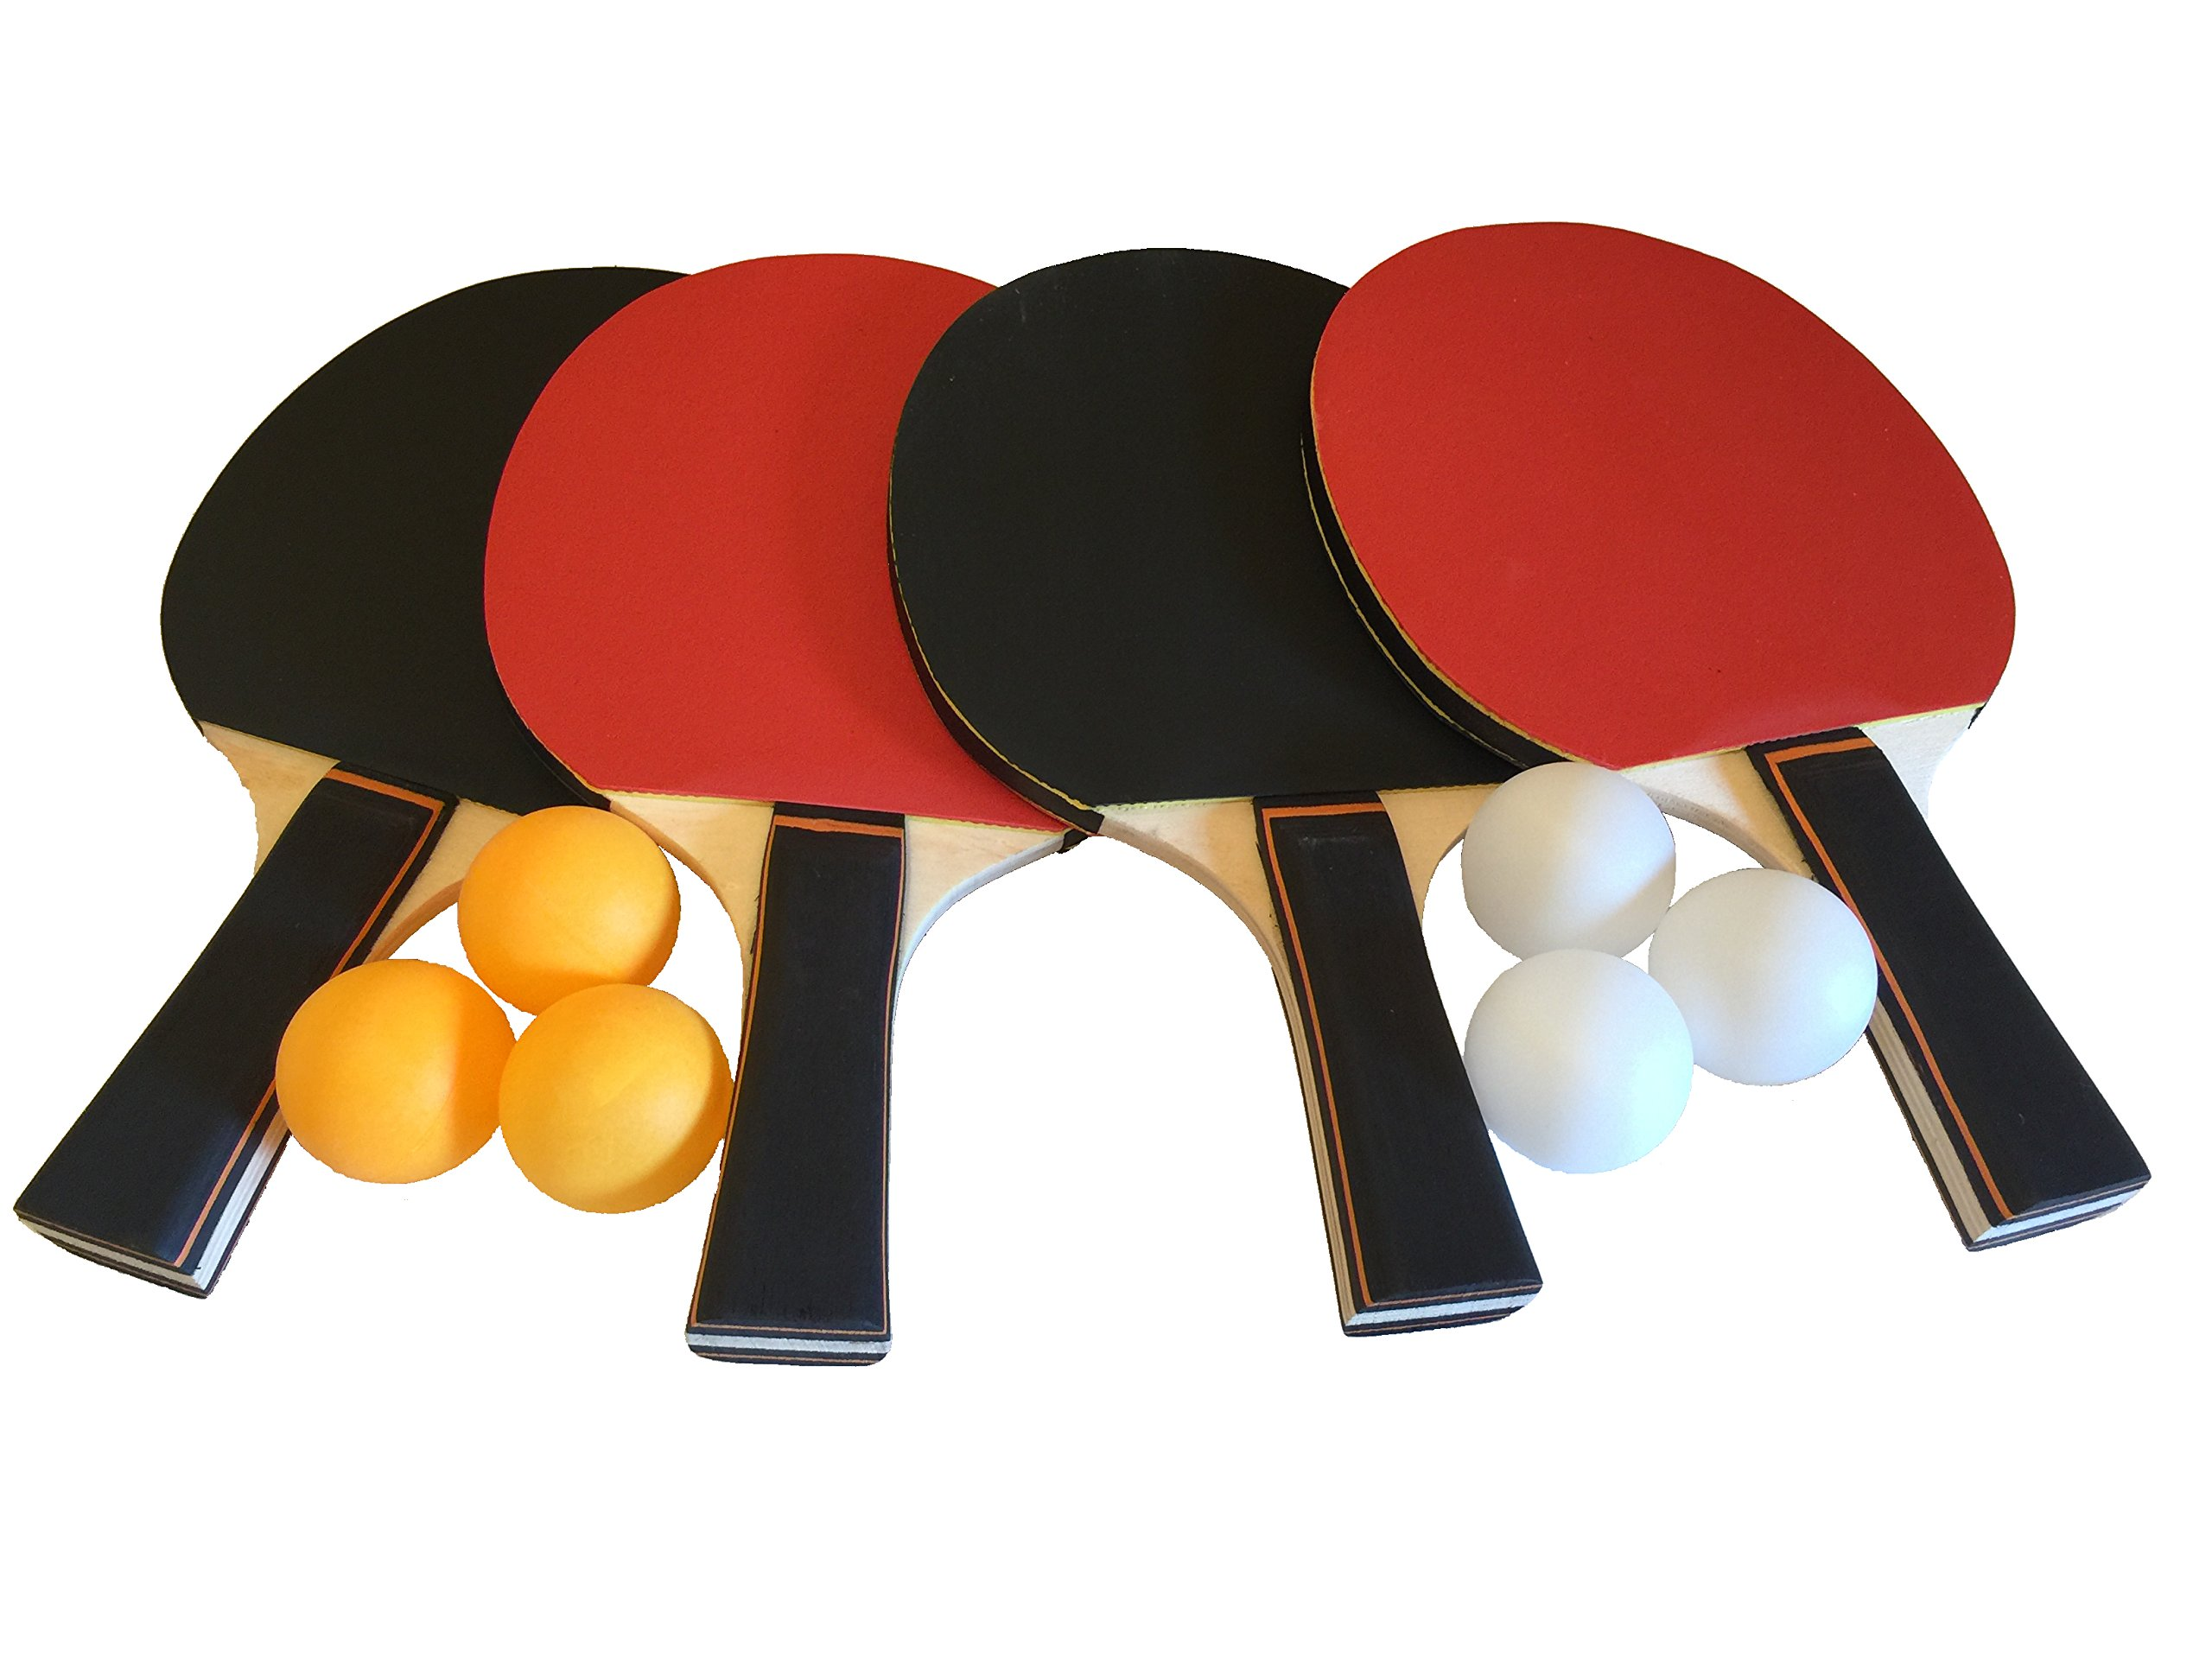 GameRoomGo Ping Pong Paddle Set, Table Tennis Set Including 4 Rackets and 6 Ping Pong Balls. Ping Pong Paddles Include Carrying Case For Storage Or Use As An Organizer. Best Value.